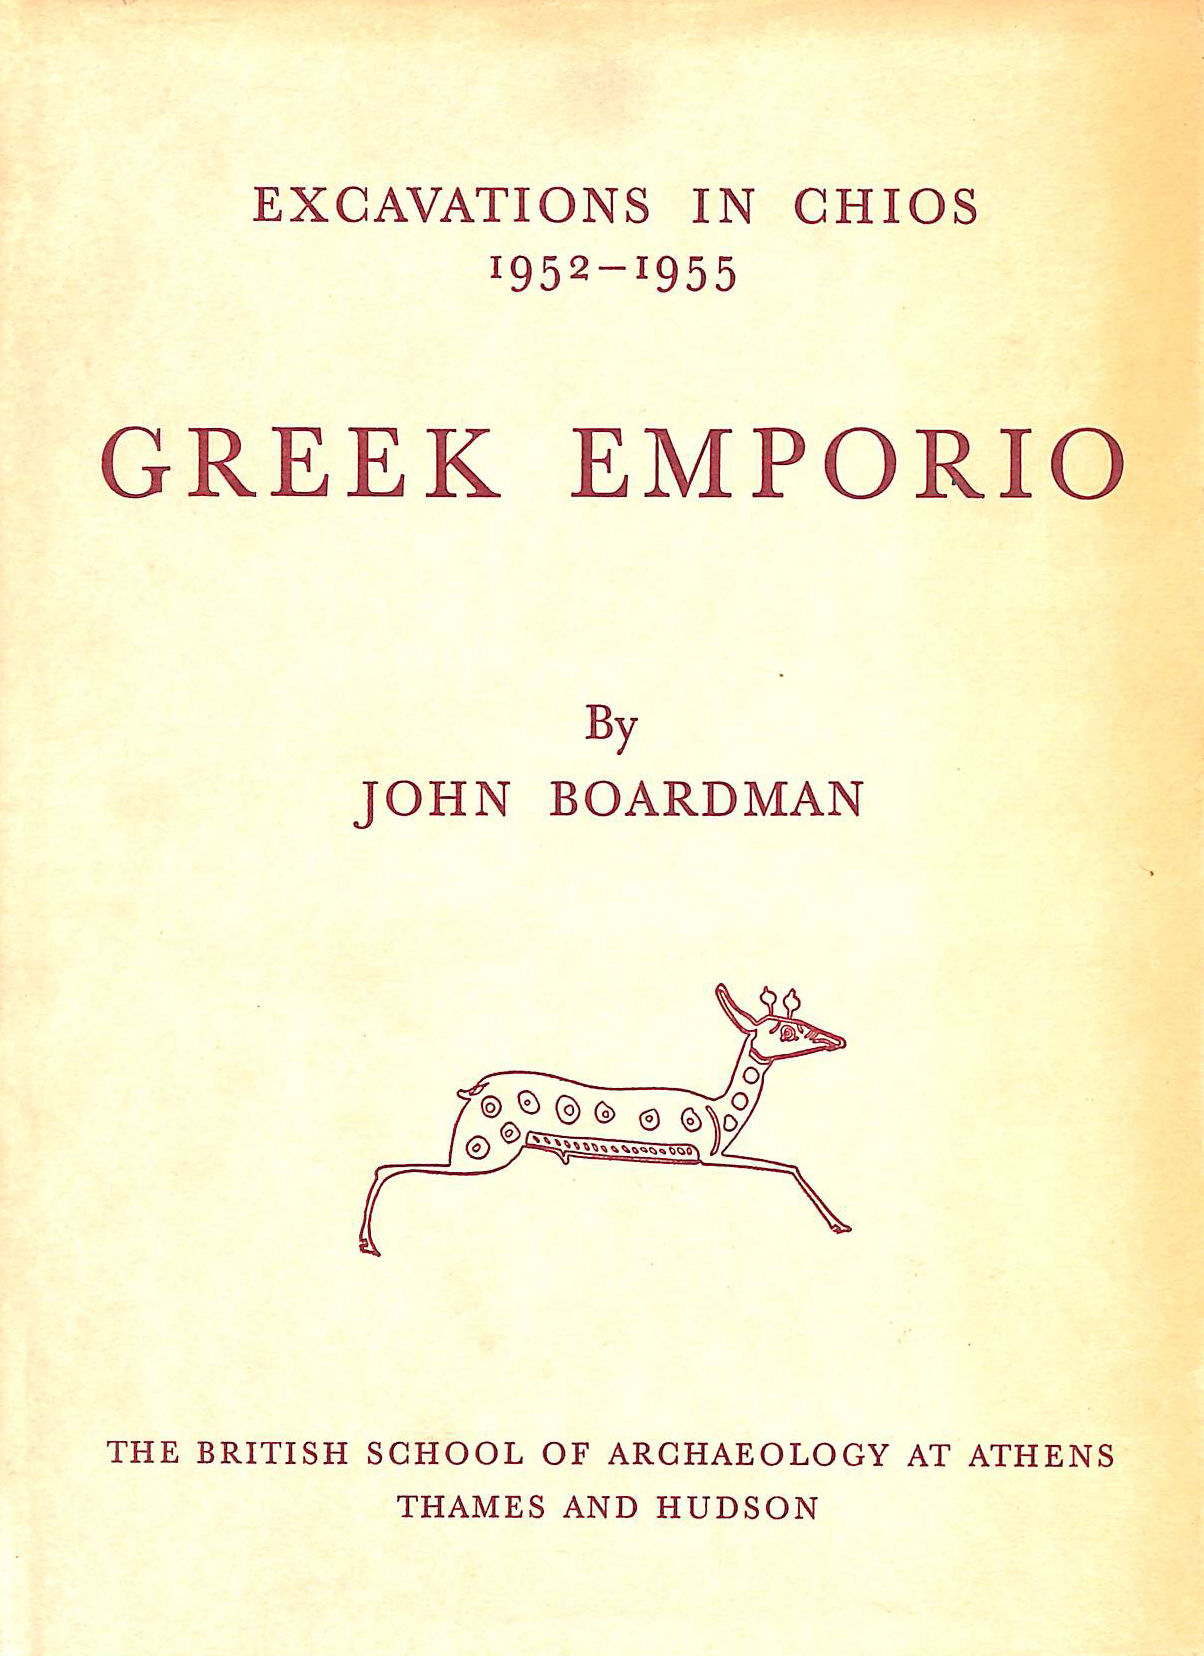 Image for Excavations in Chios, 1952-55: Greek Emporio (British School of Archaeology , Athens, Publications)